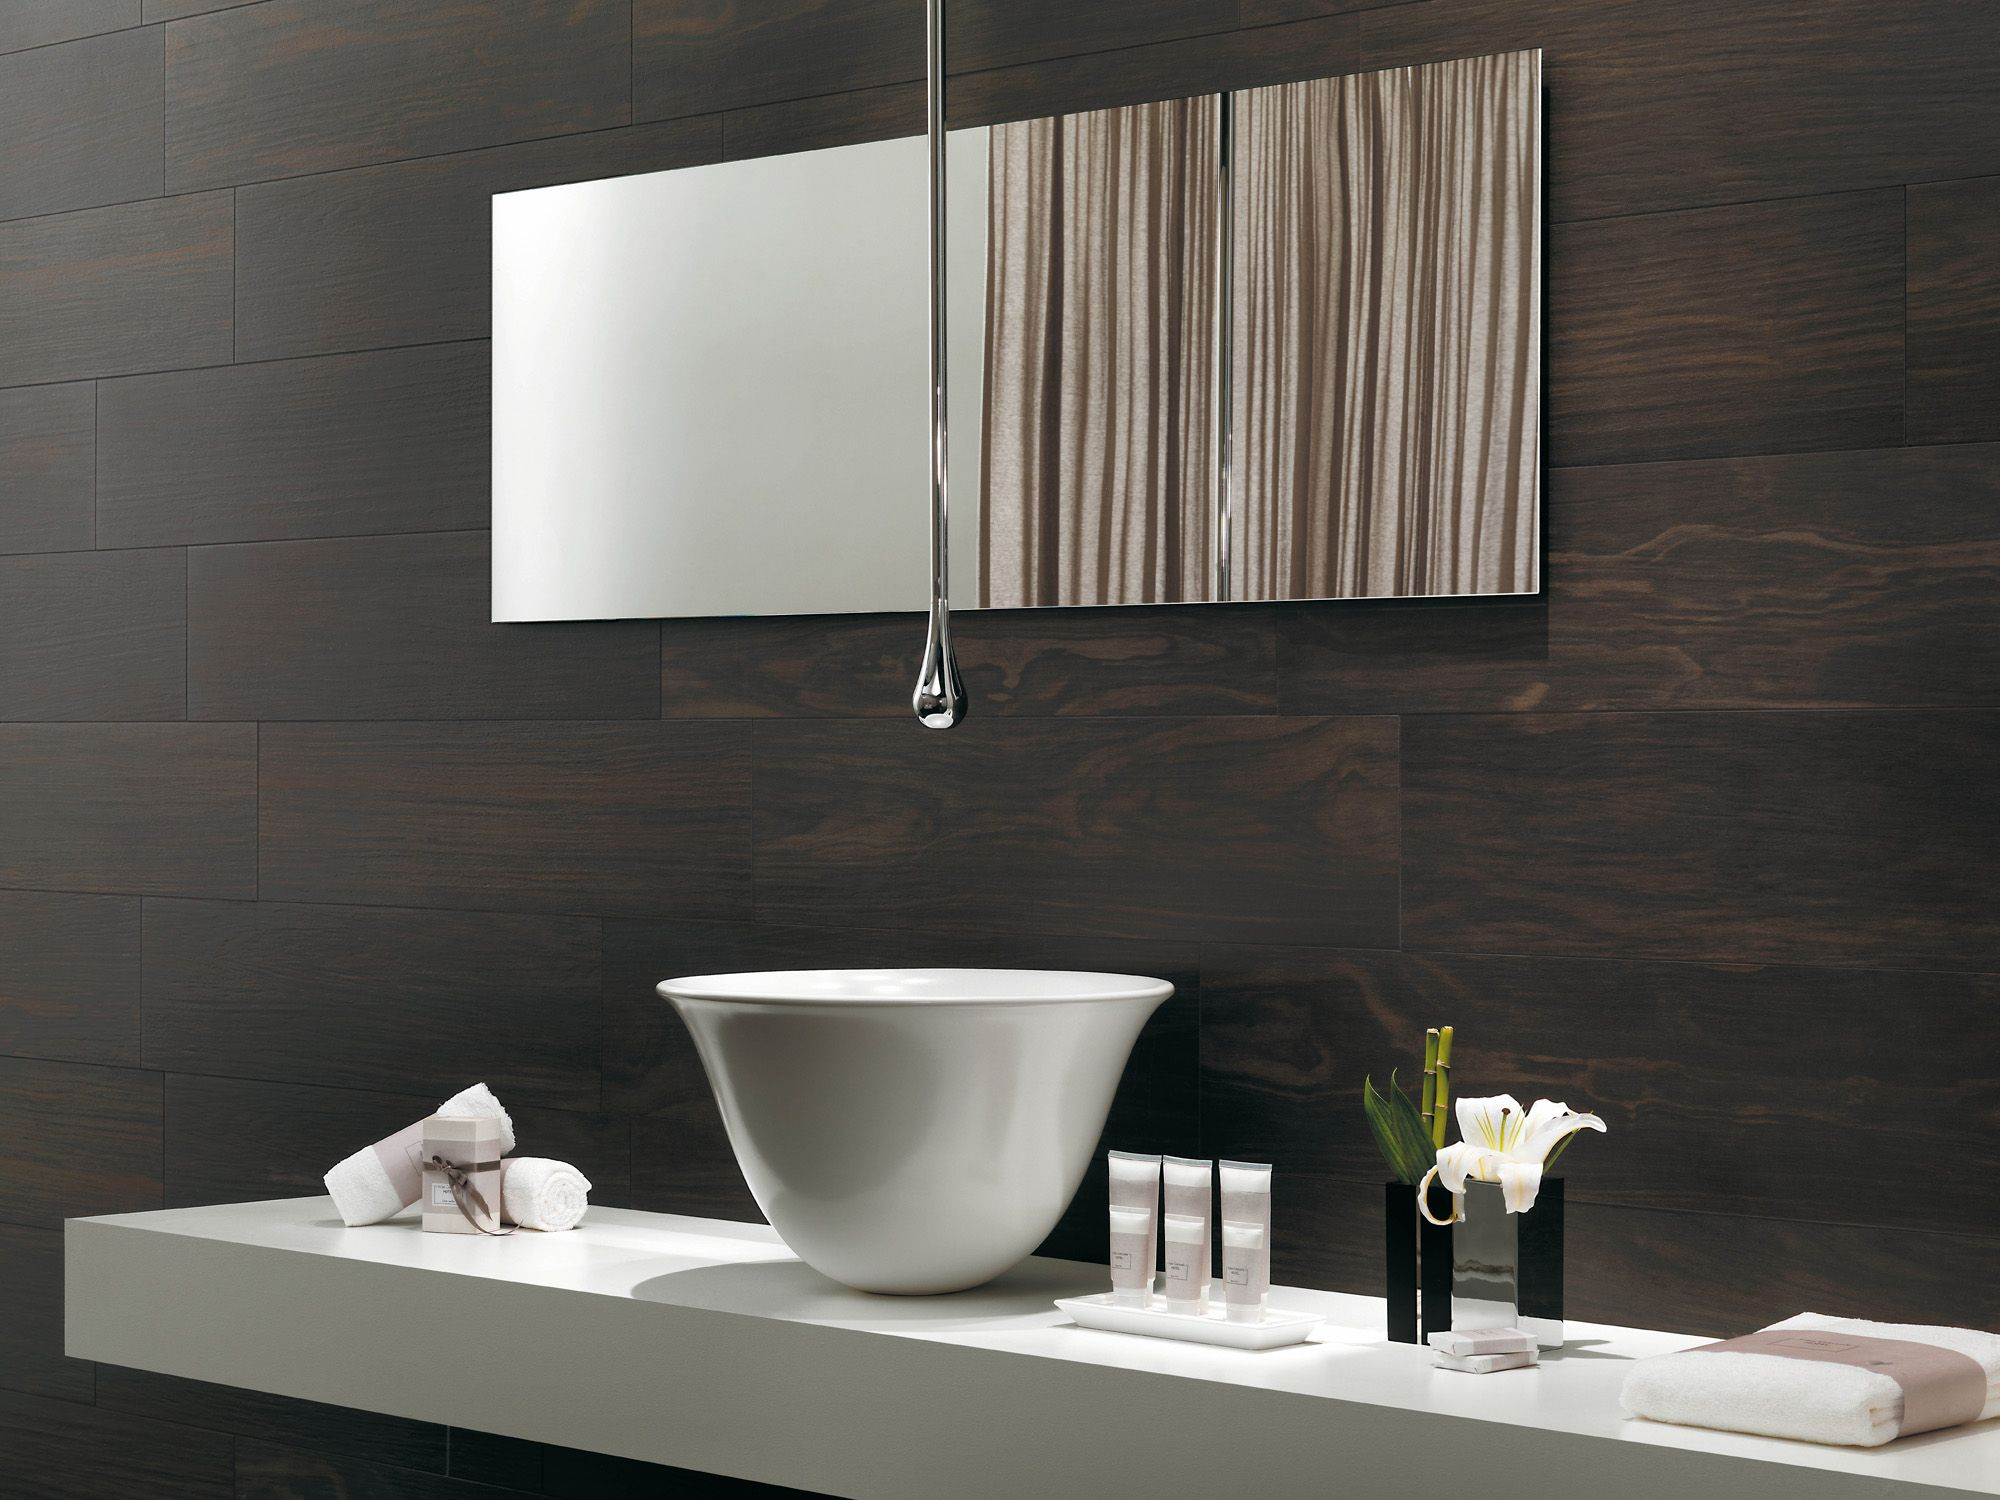 Ebano Furniture Bathroom With Wood Effect Mathwatson - Ebano-furniture-bathroom-with-wood-effect